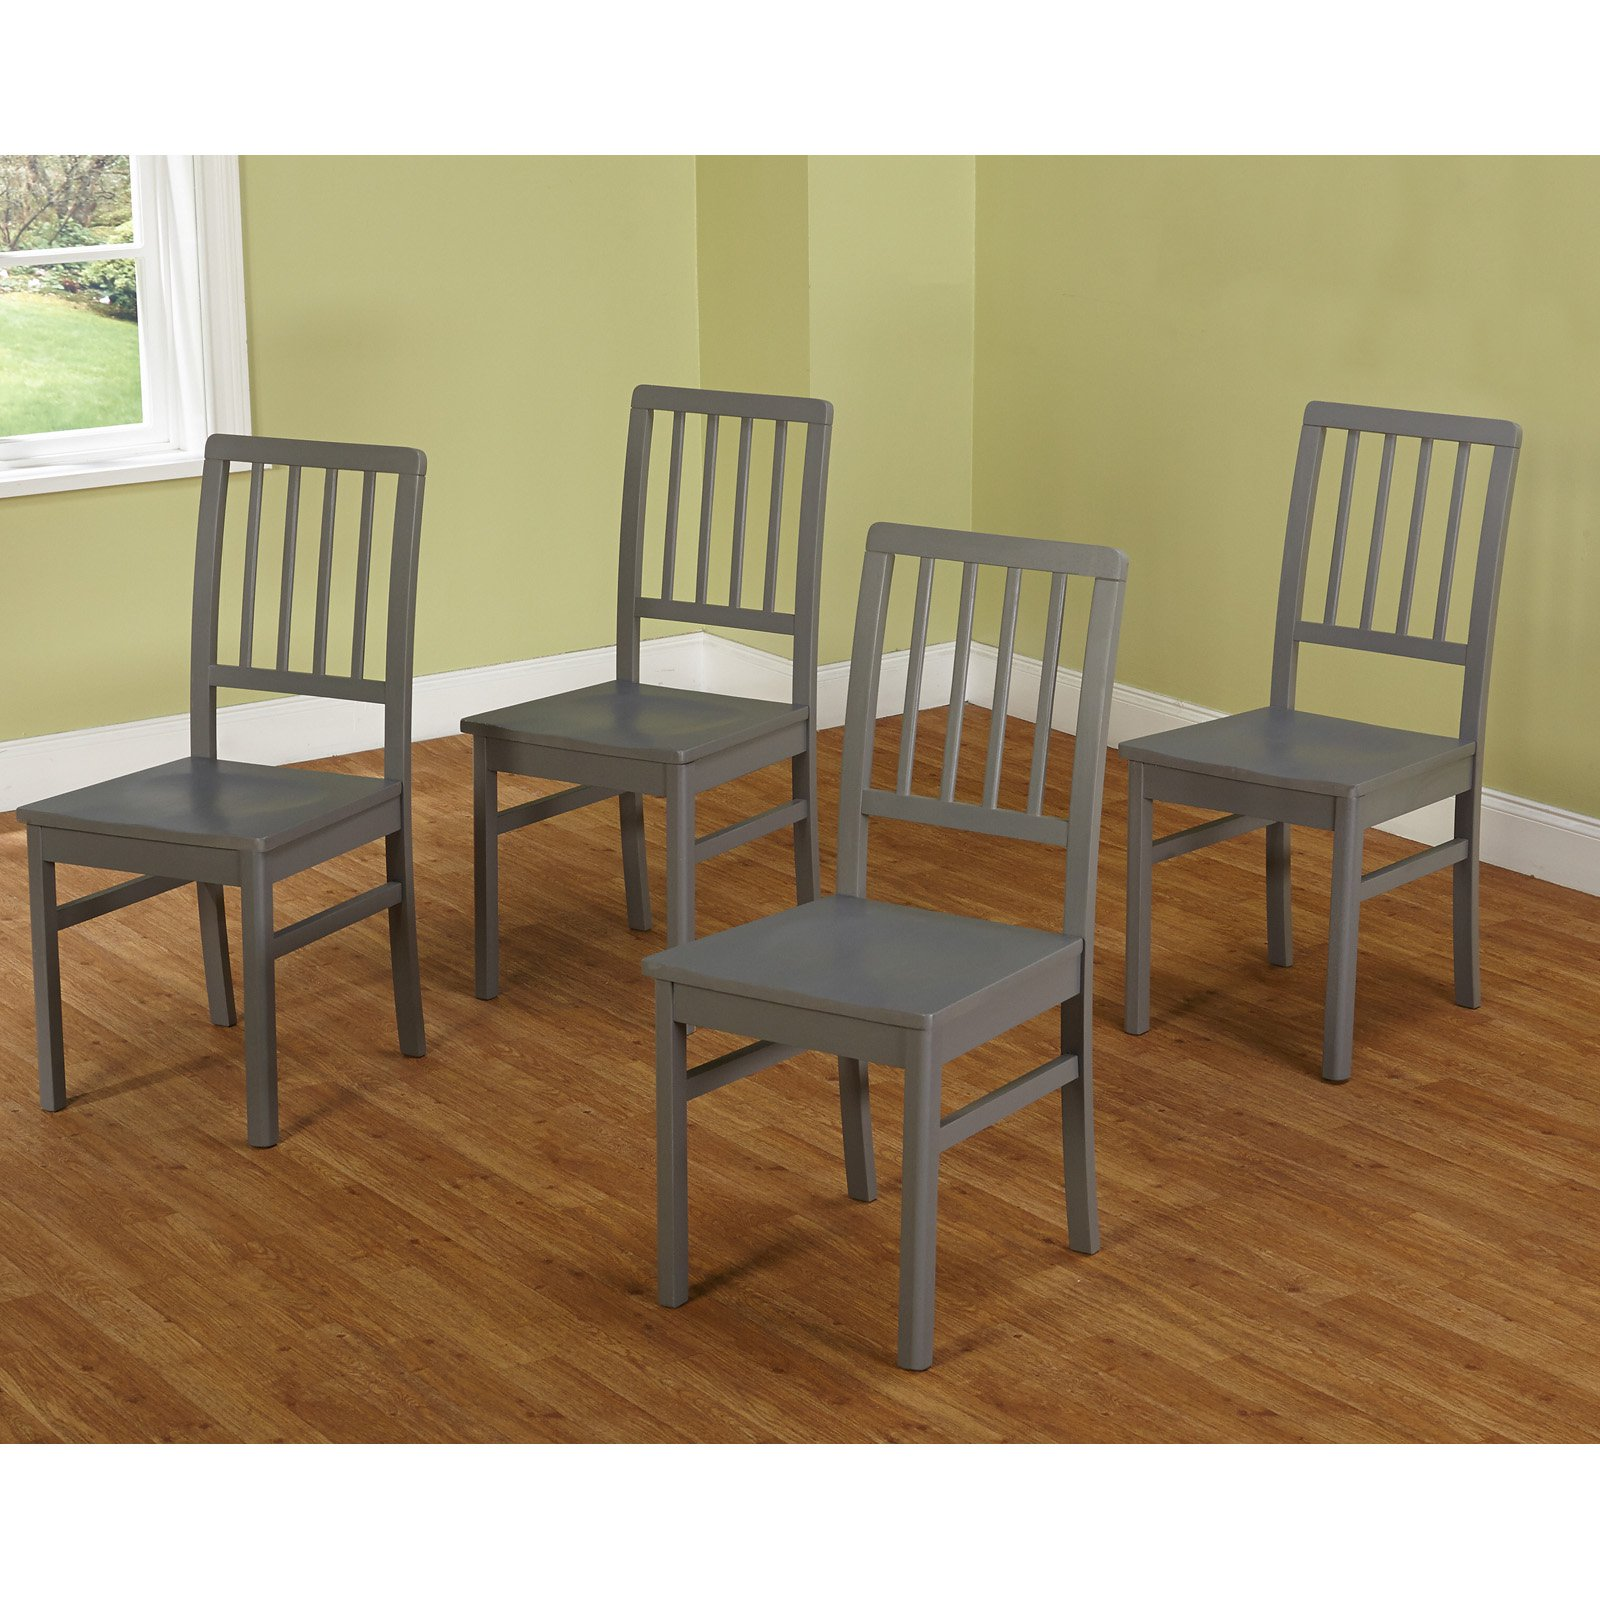 set of 4 dining chairs for sale ebay camden chair multiple colors walmart com